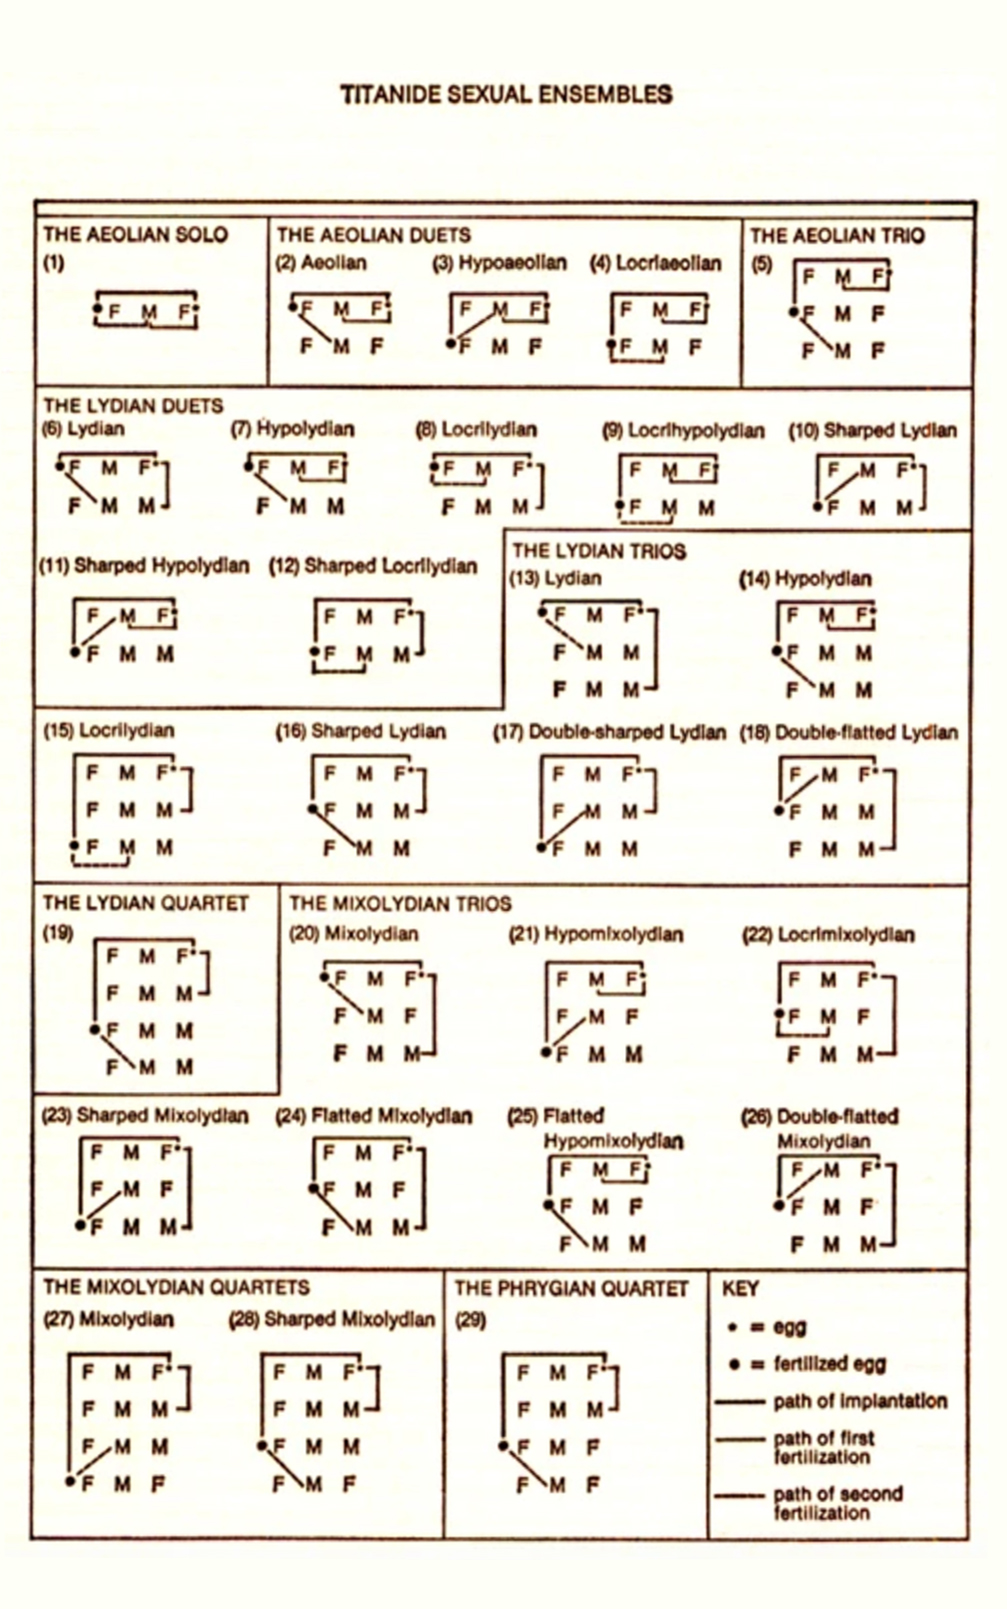 Titanide Sexual Ensembles chart from John Varley's Wizard